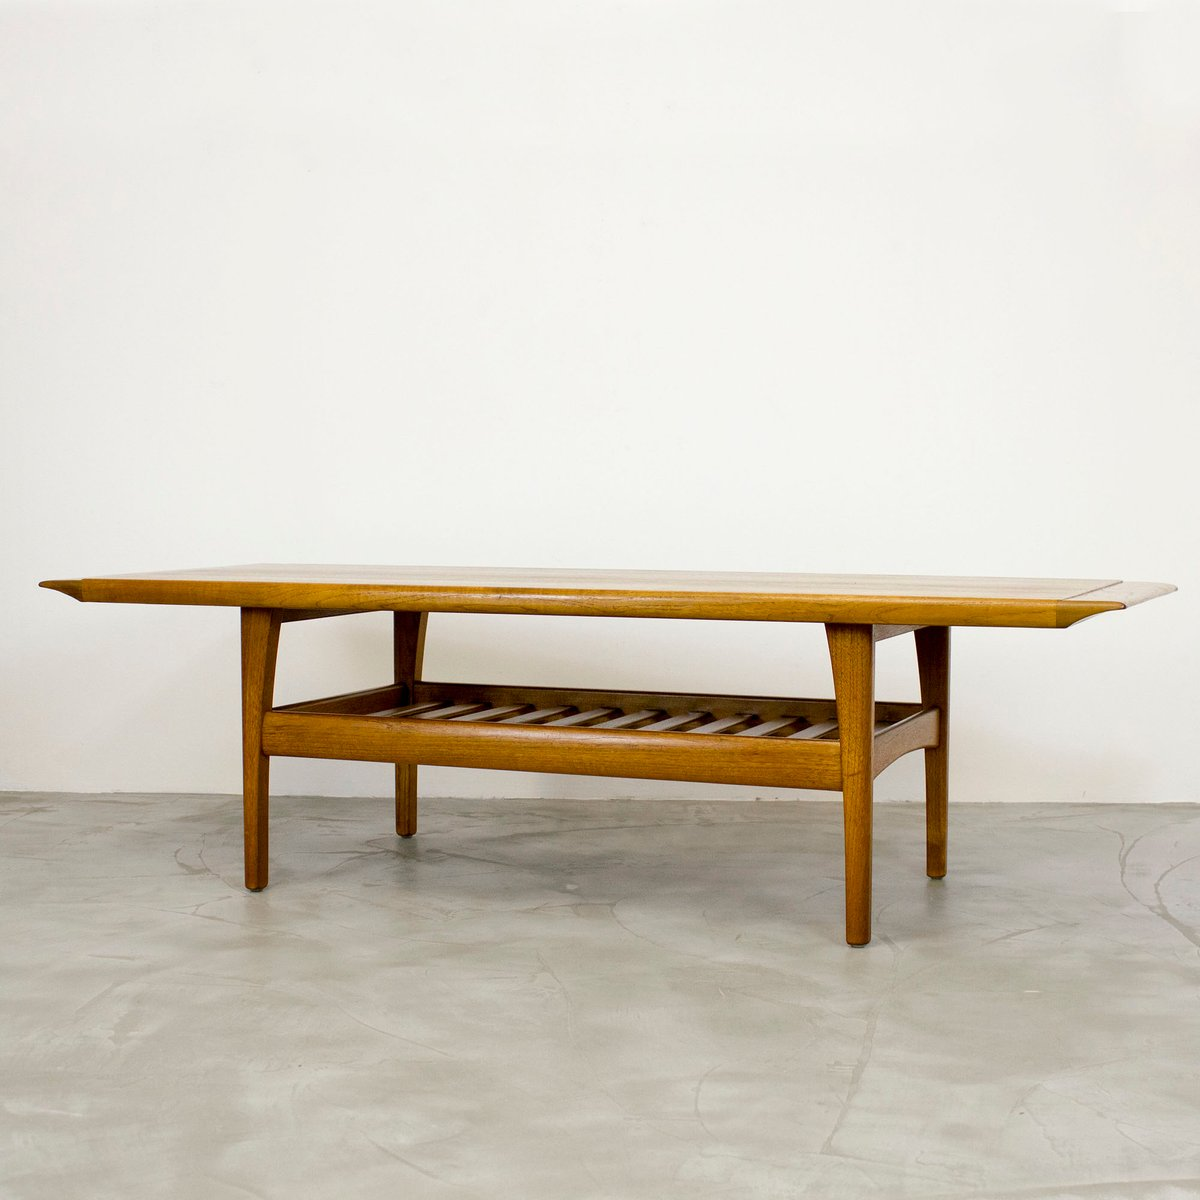 Danish Teak Coffee Table With Magazine Shelf, 1960s For Sale At Pamono